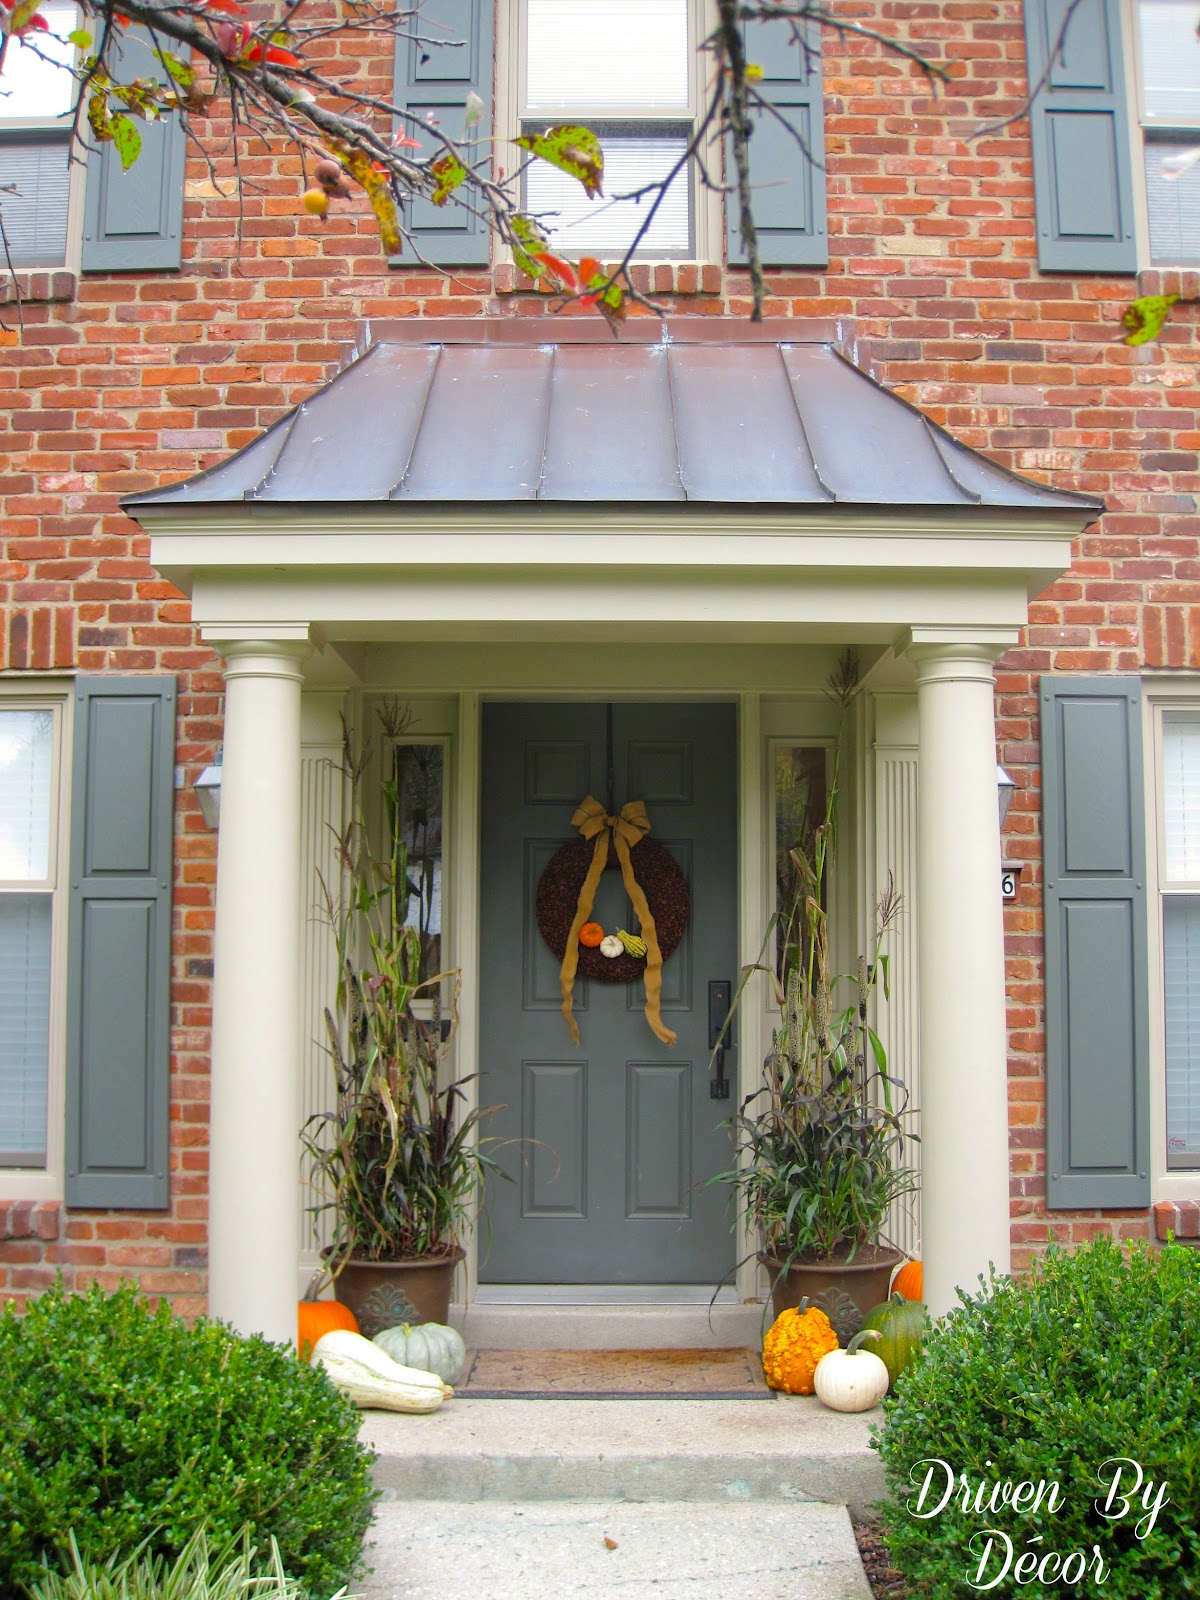 Decorating my front porch for fall driven by decor Front porch ideas